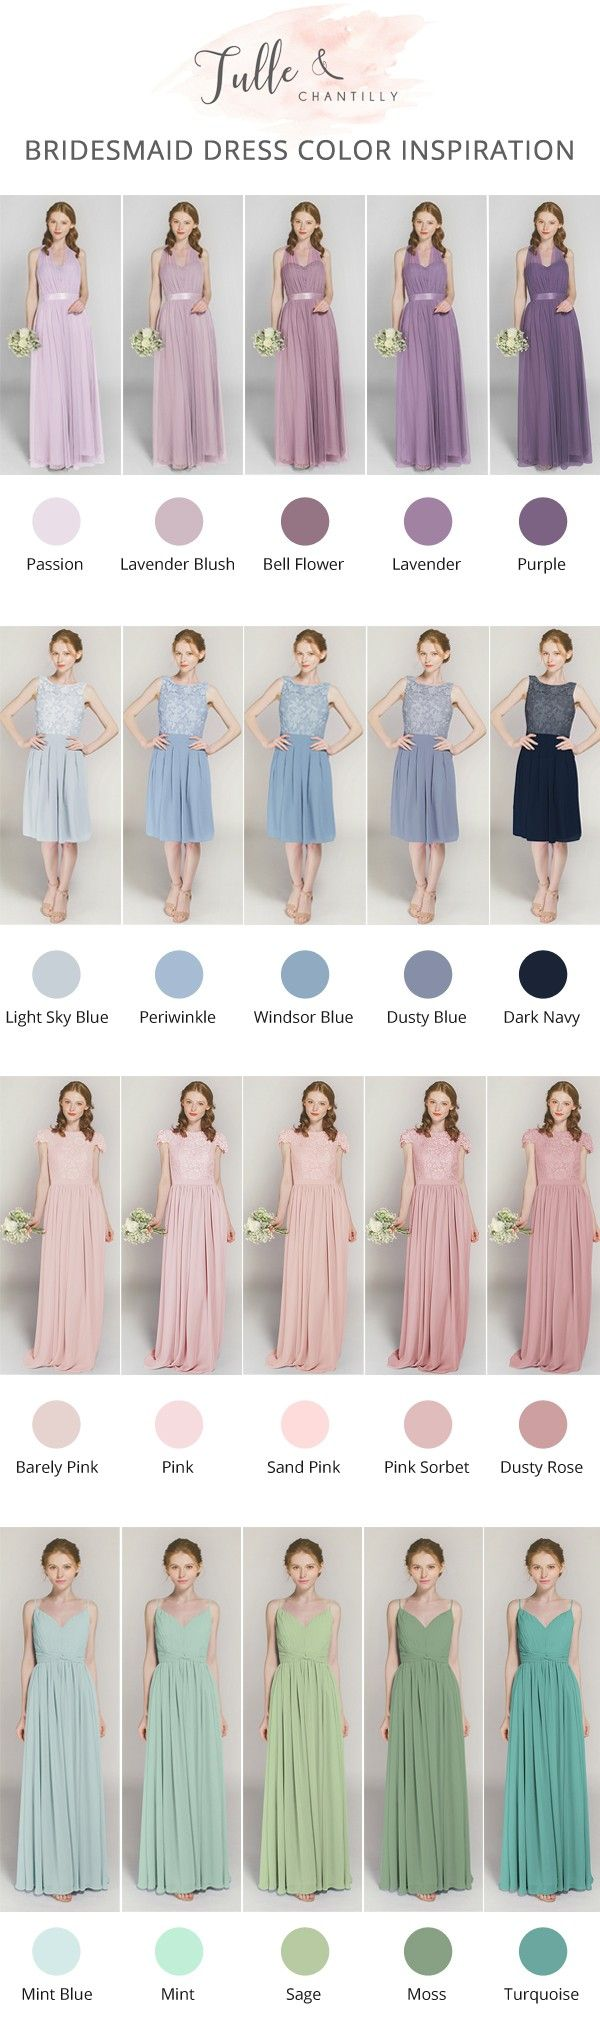 shades of pink, purple, blue and green bridesmaid dress  color inspiration